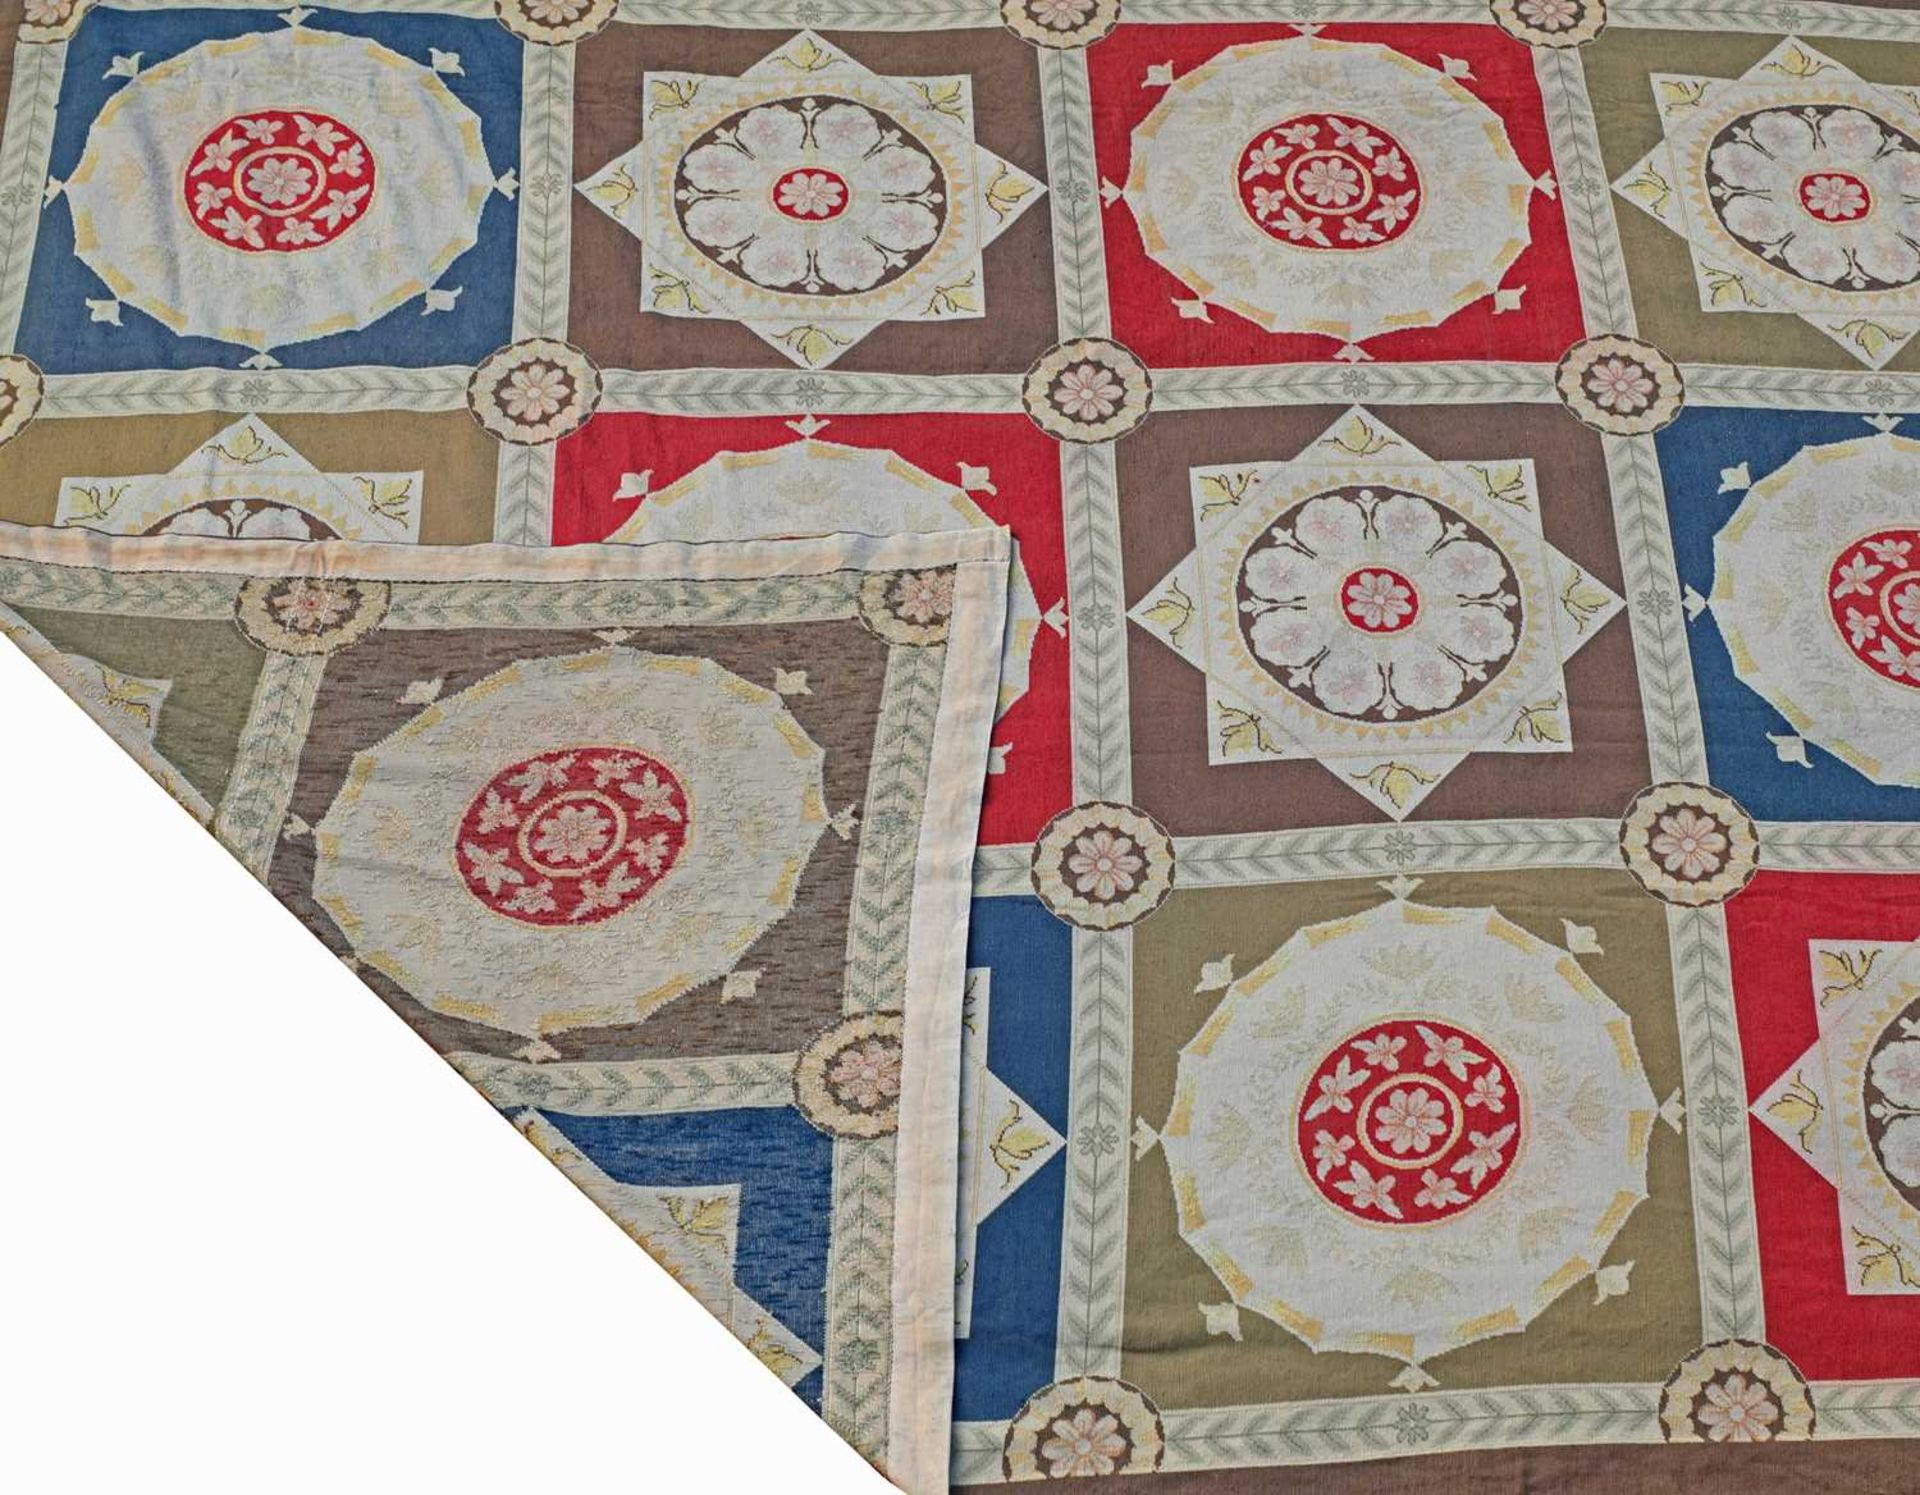 A handwoven needlepoint rug of 17th century Savonnerie design, - Image 3 of 3